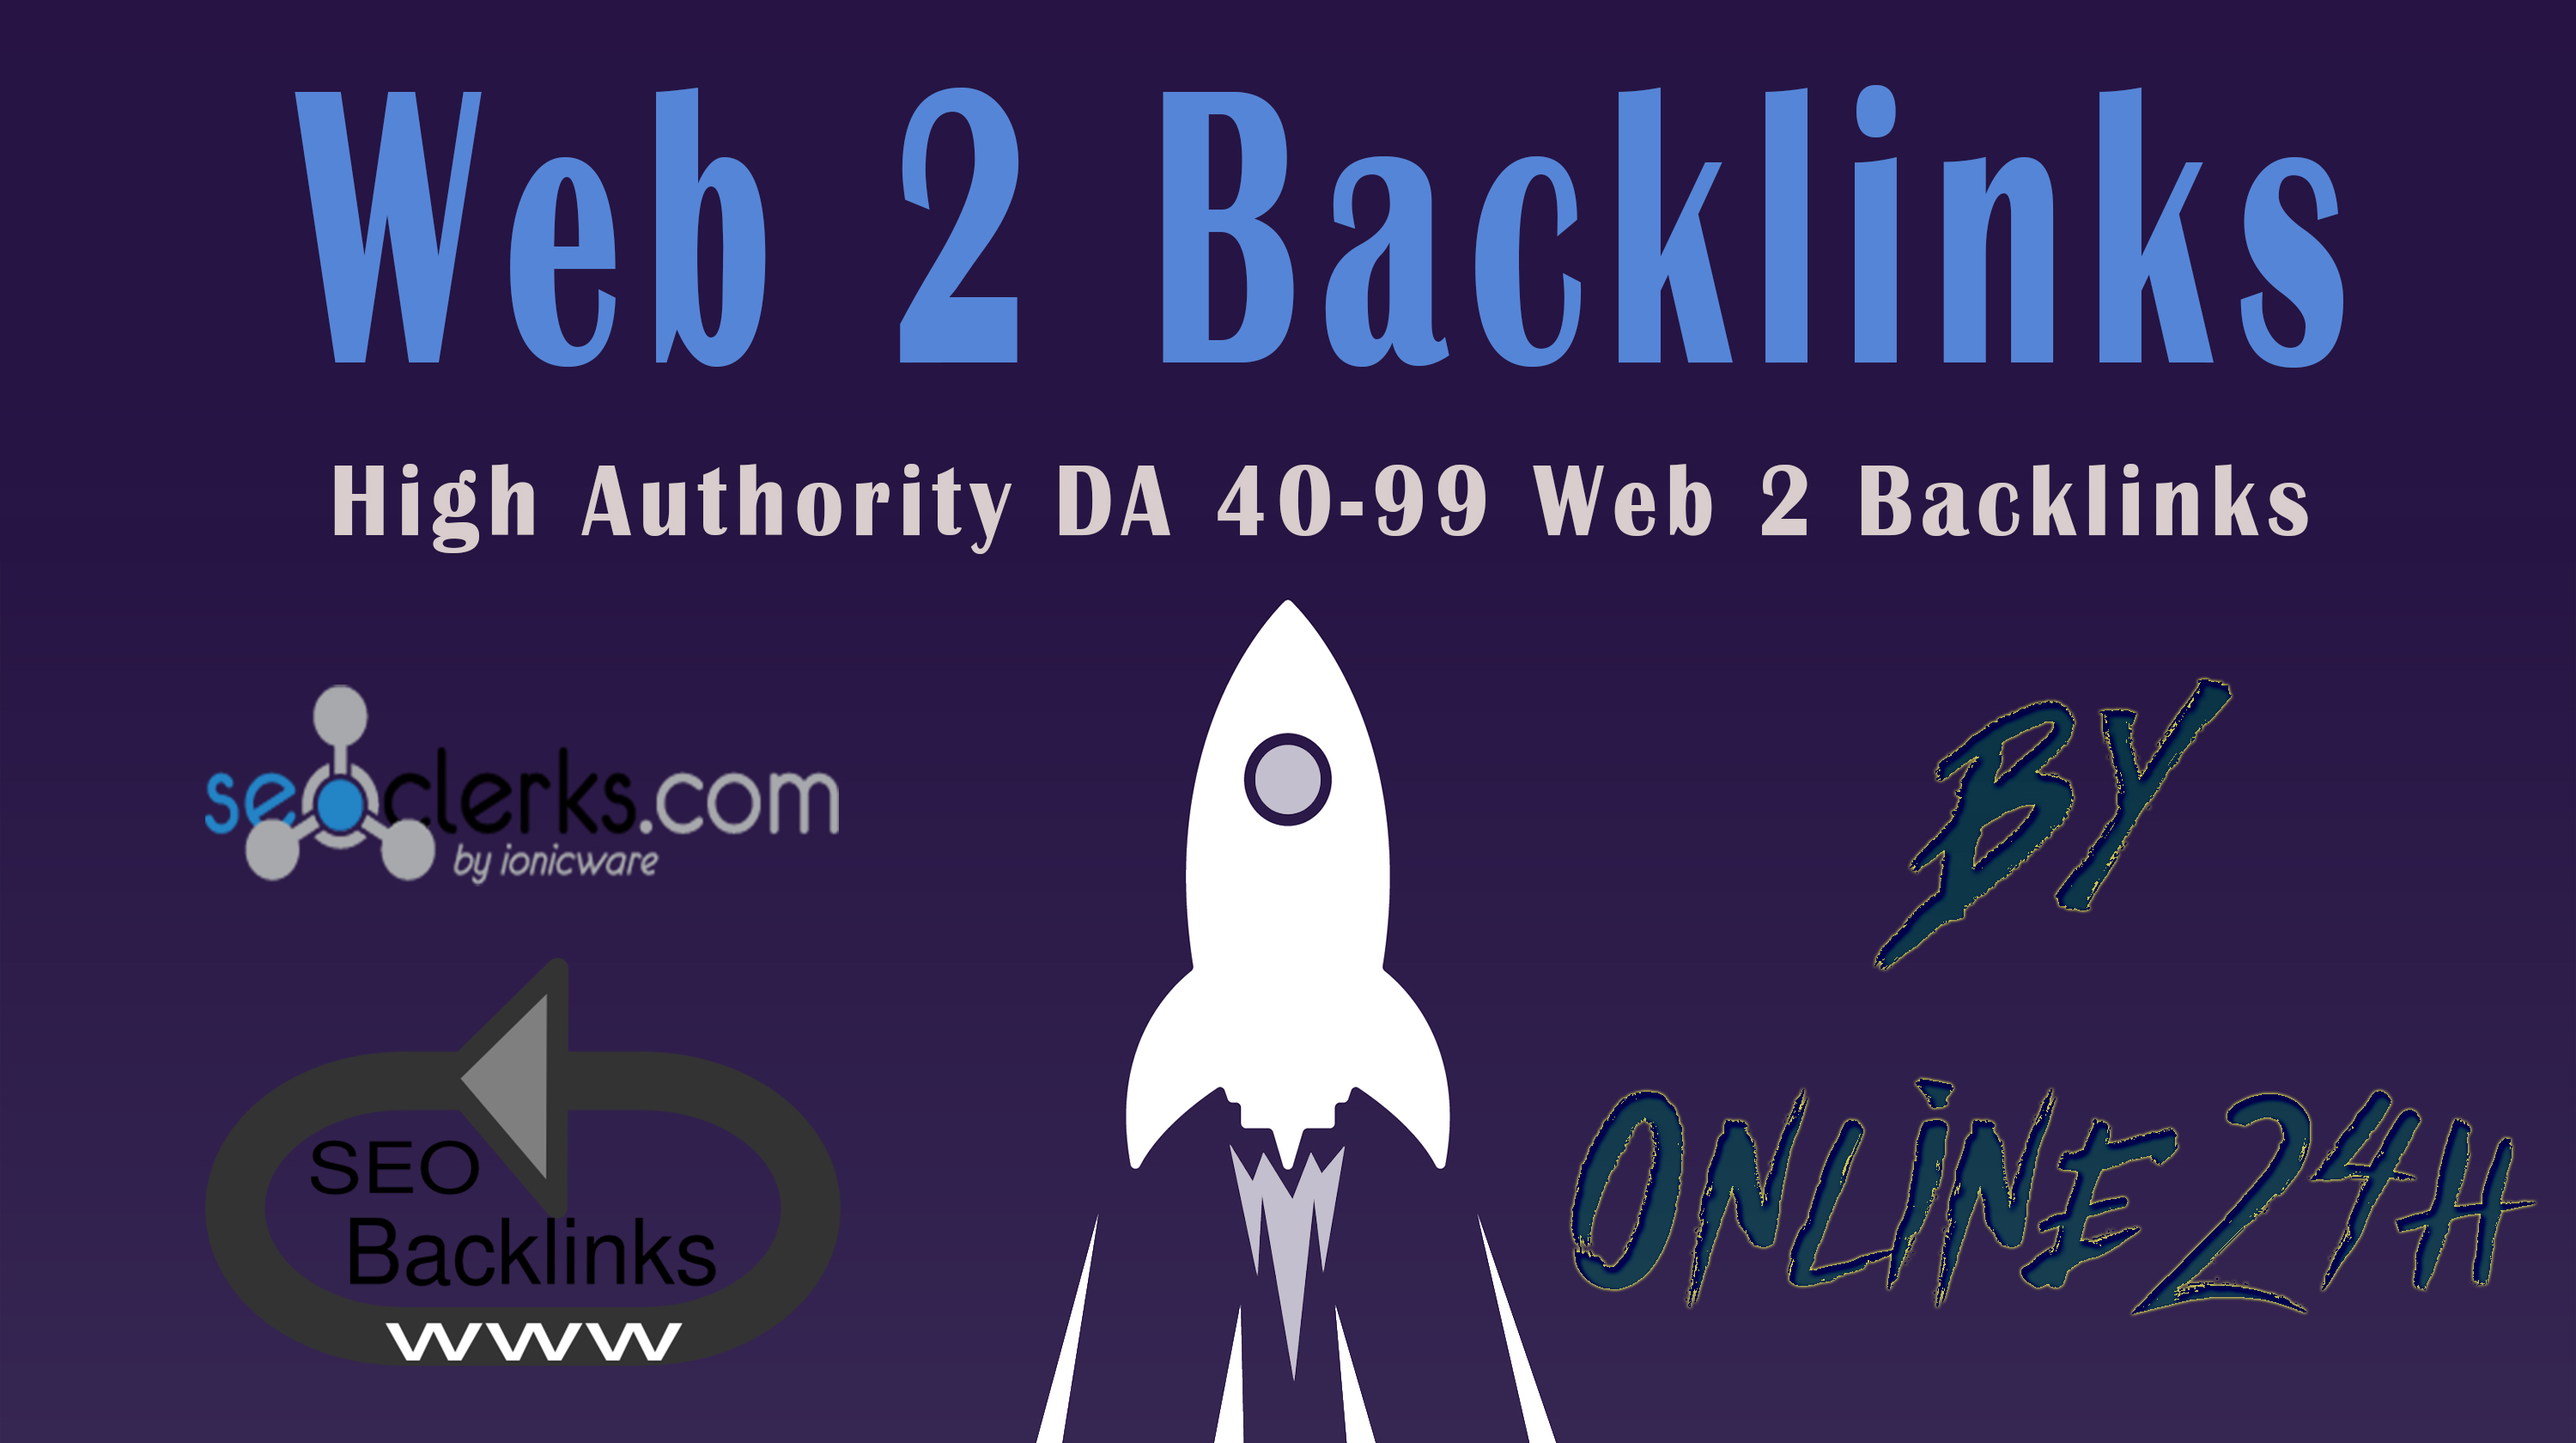 30+ High Authority DA 40-99 Web 2 Backlinks only